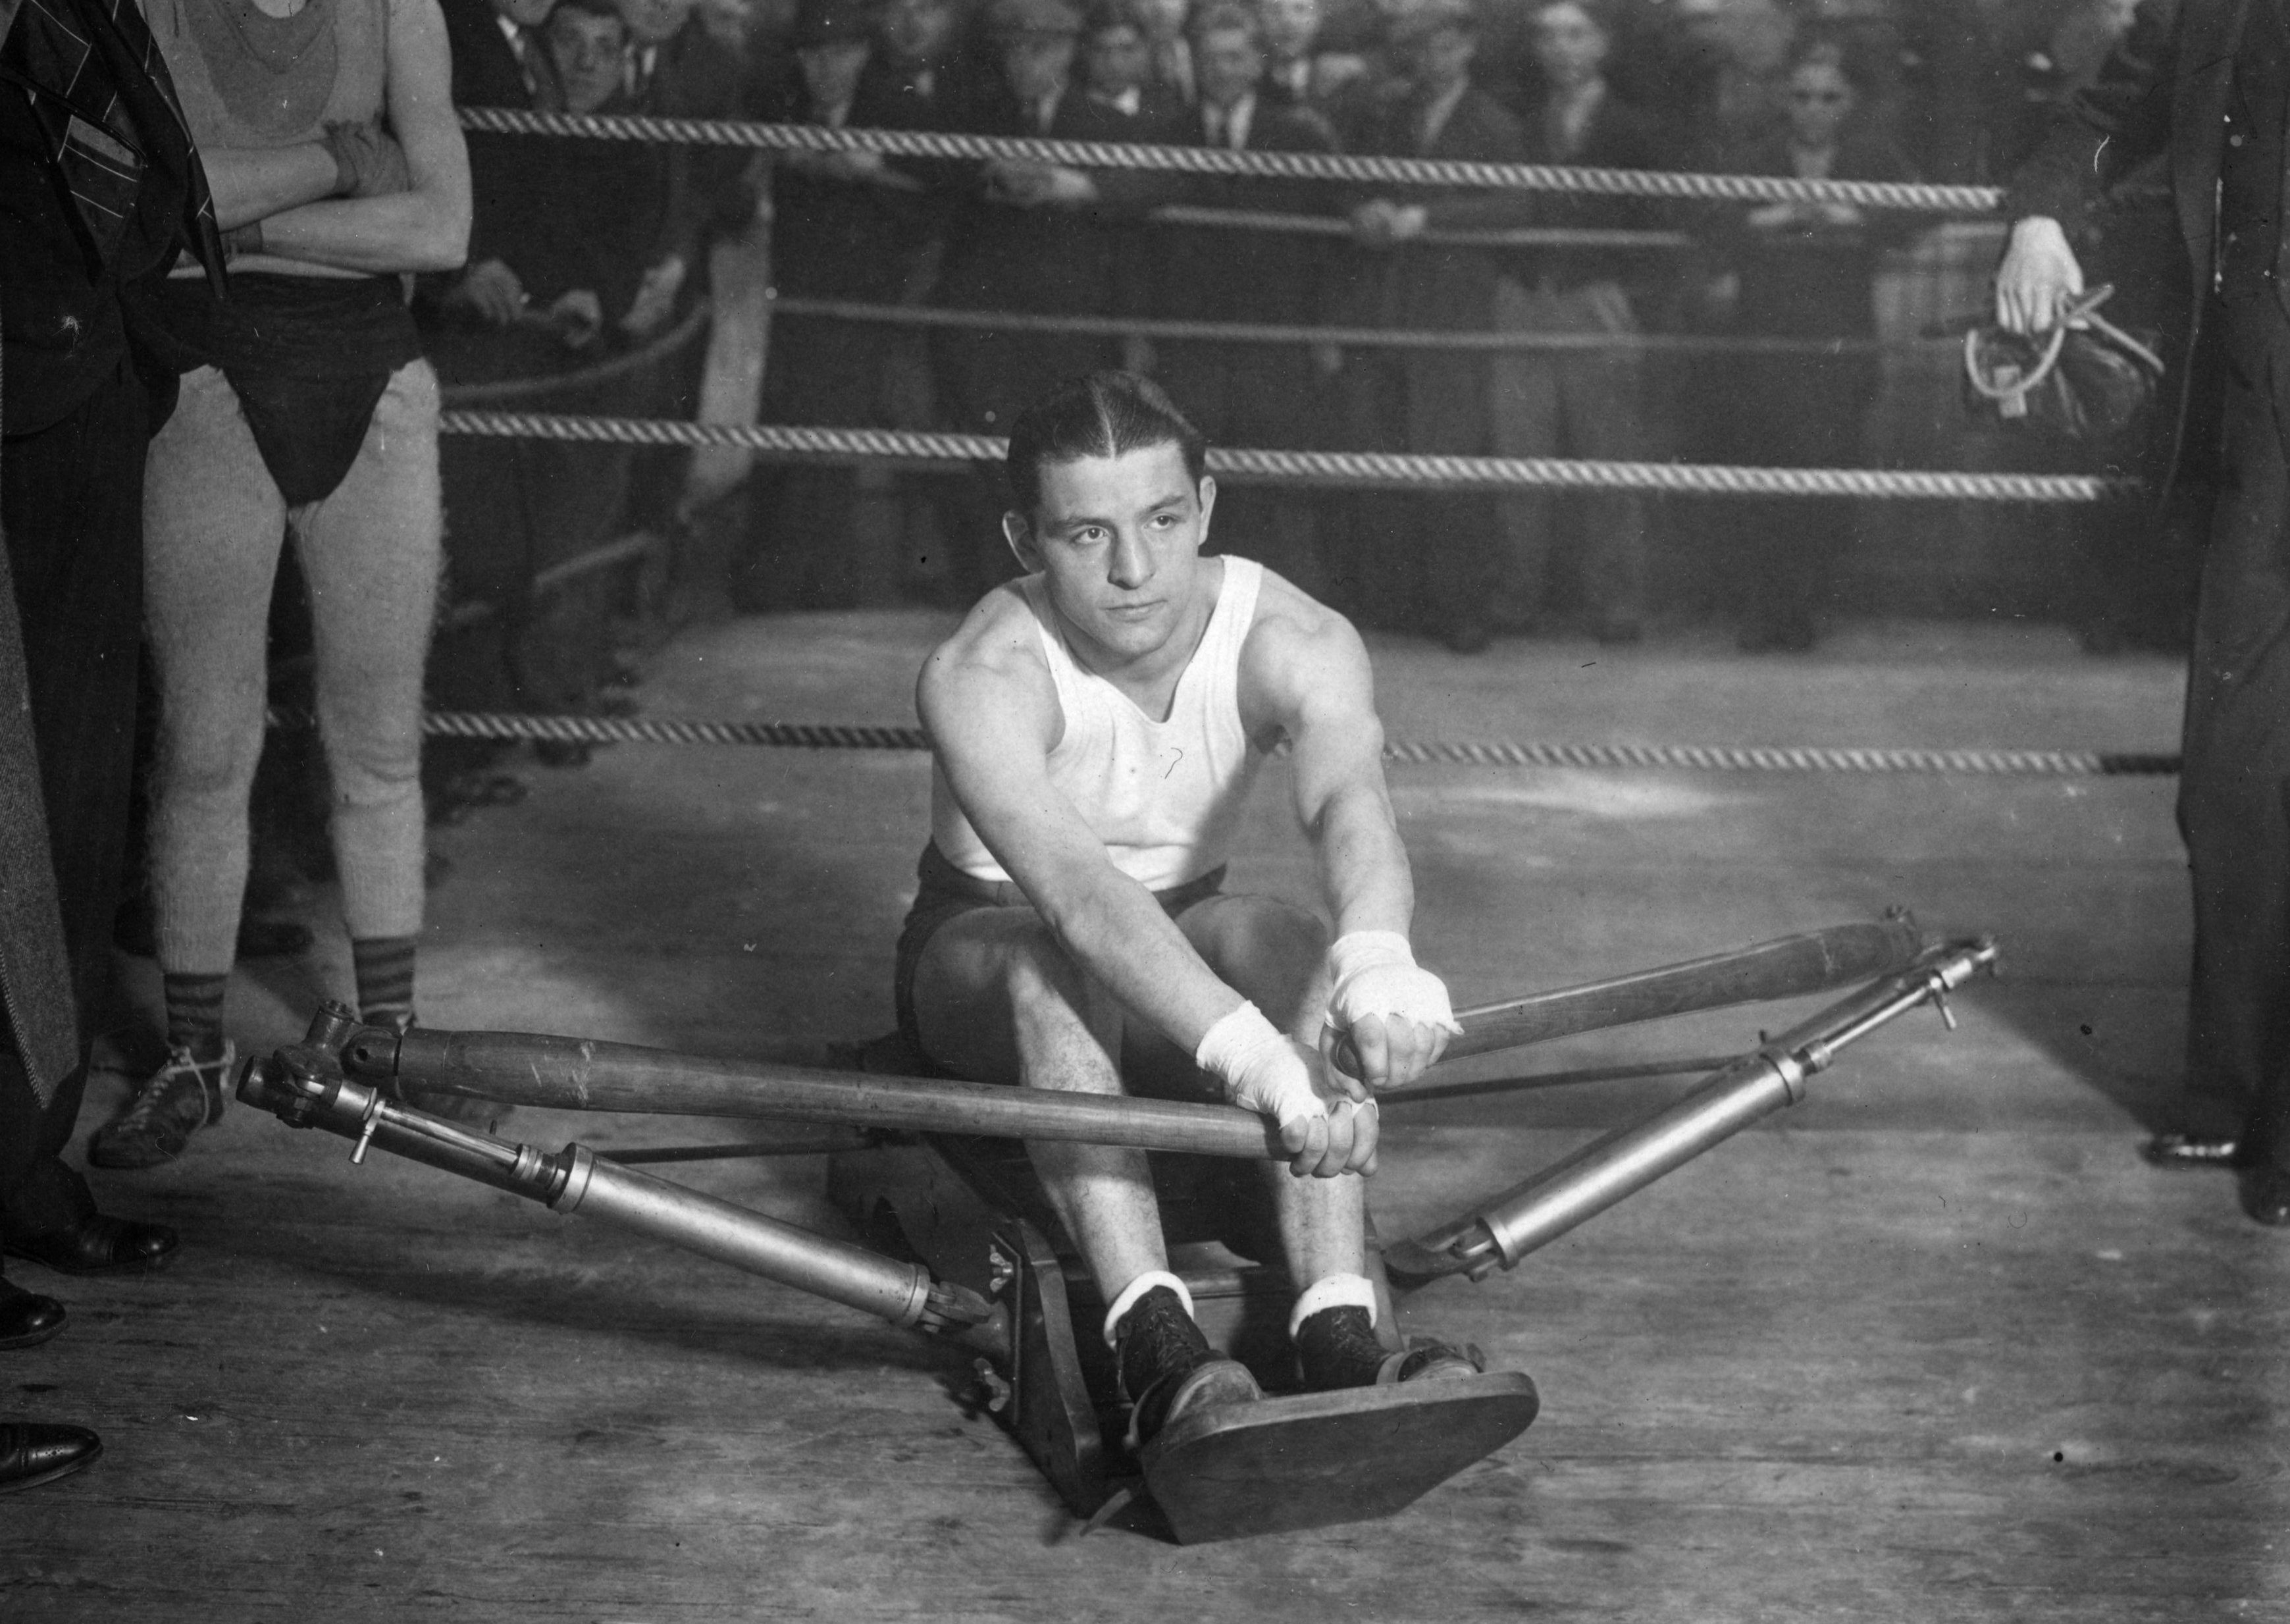 Jack 'Kid' Berg trained hard aftre coming from nowhere to conquer the world